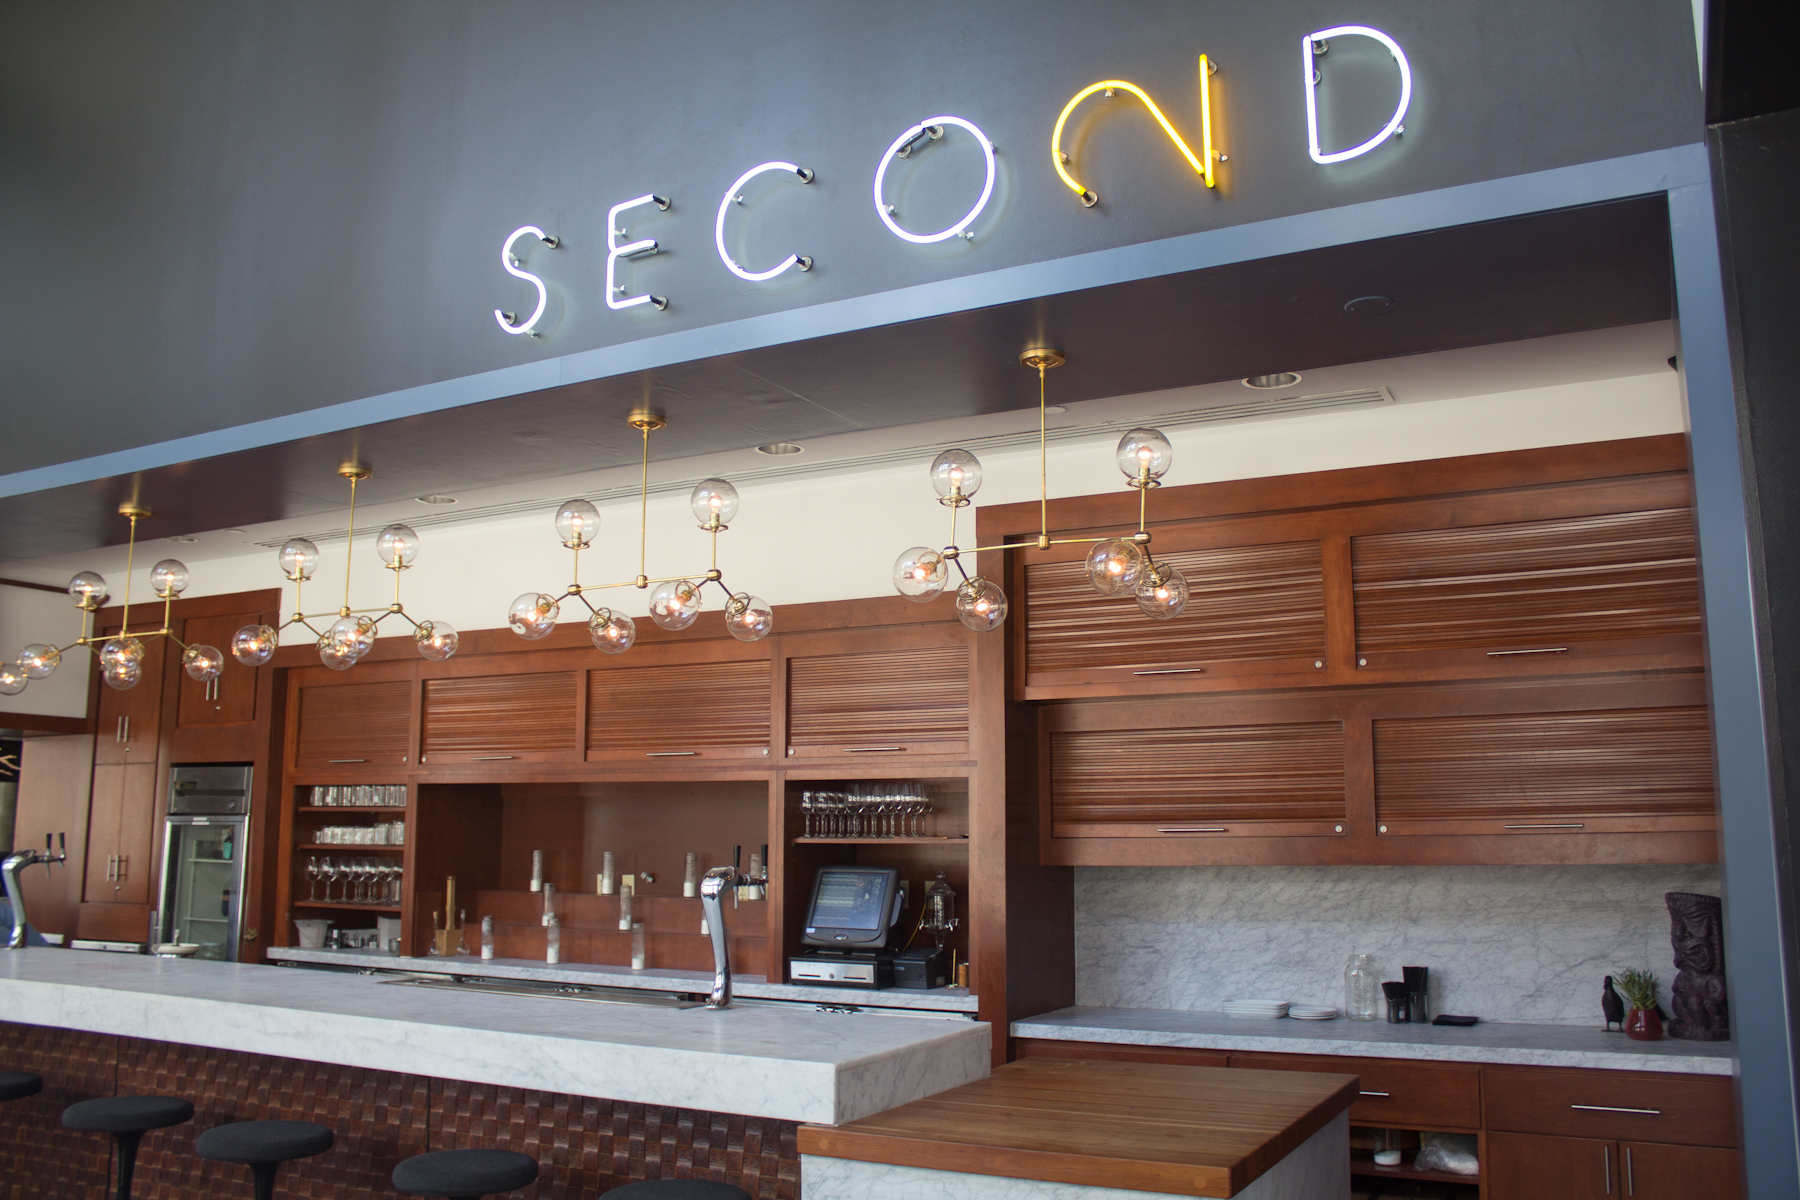 take a look inside second bar + kitchen's downtown expansion